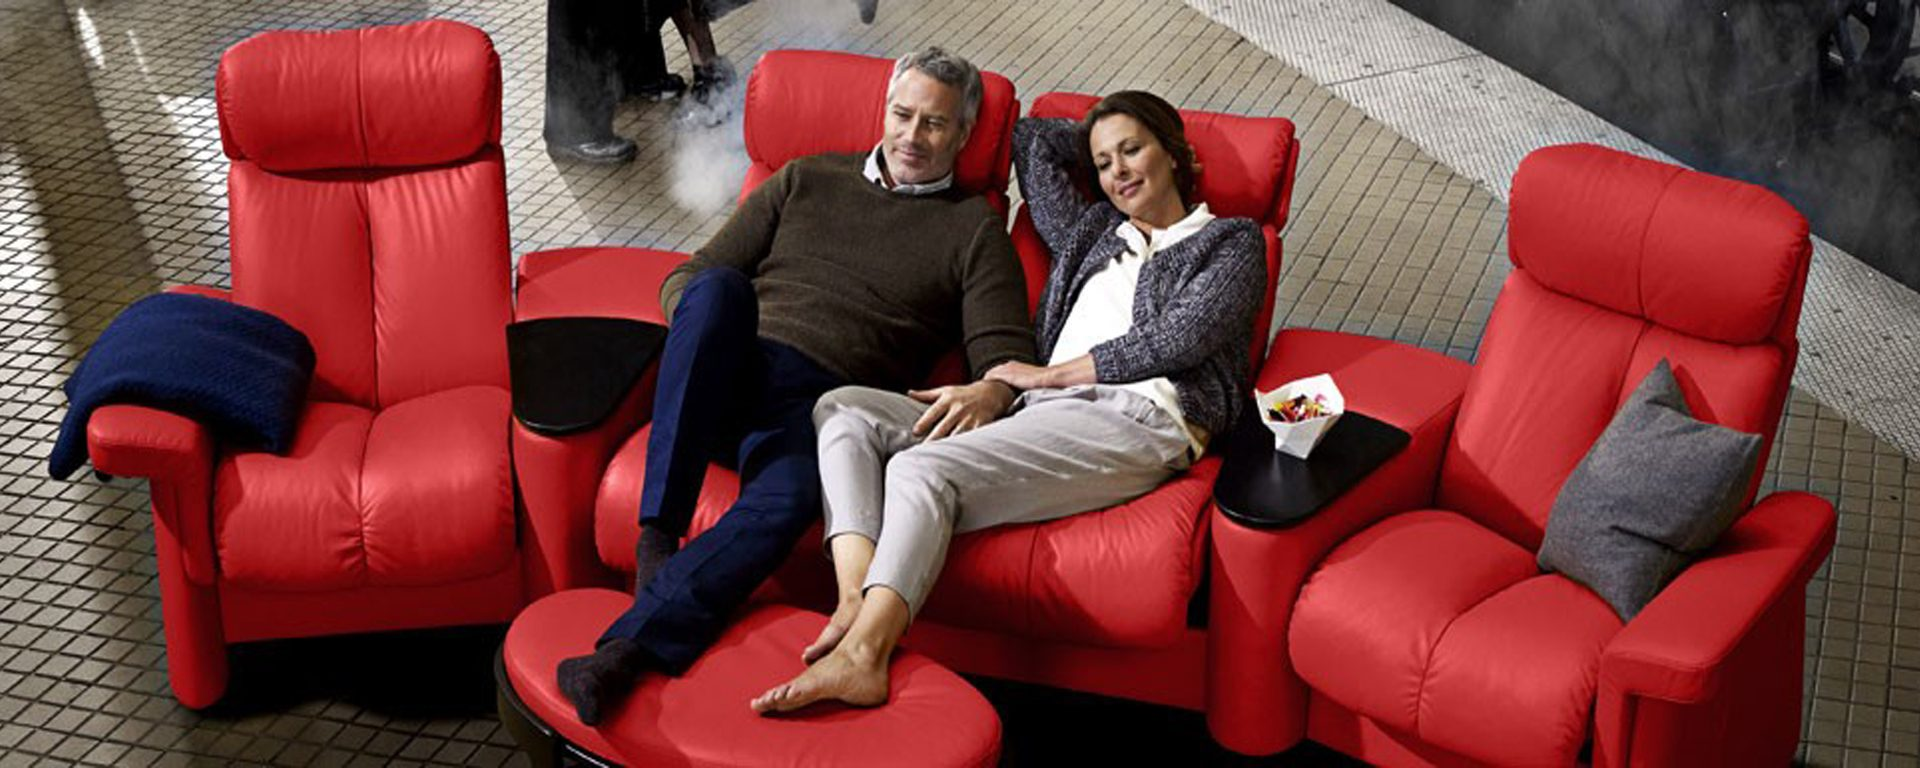 30% Off Stressless Recliners